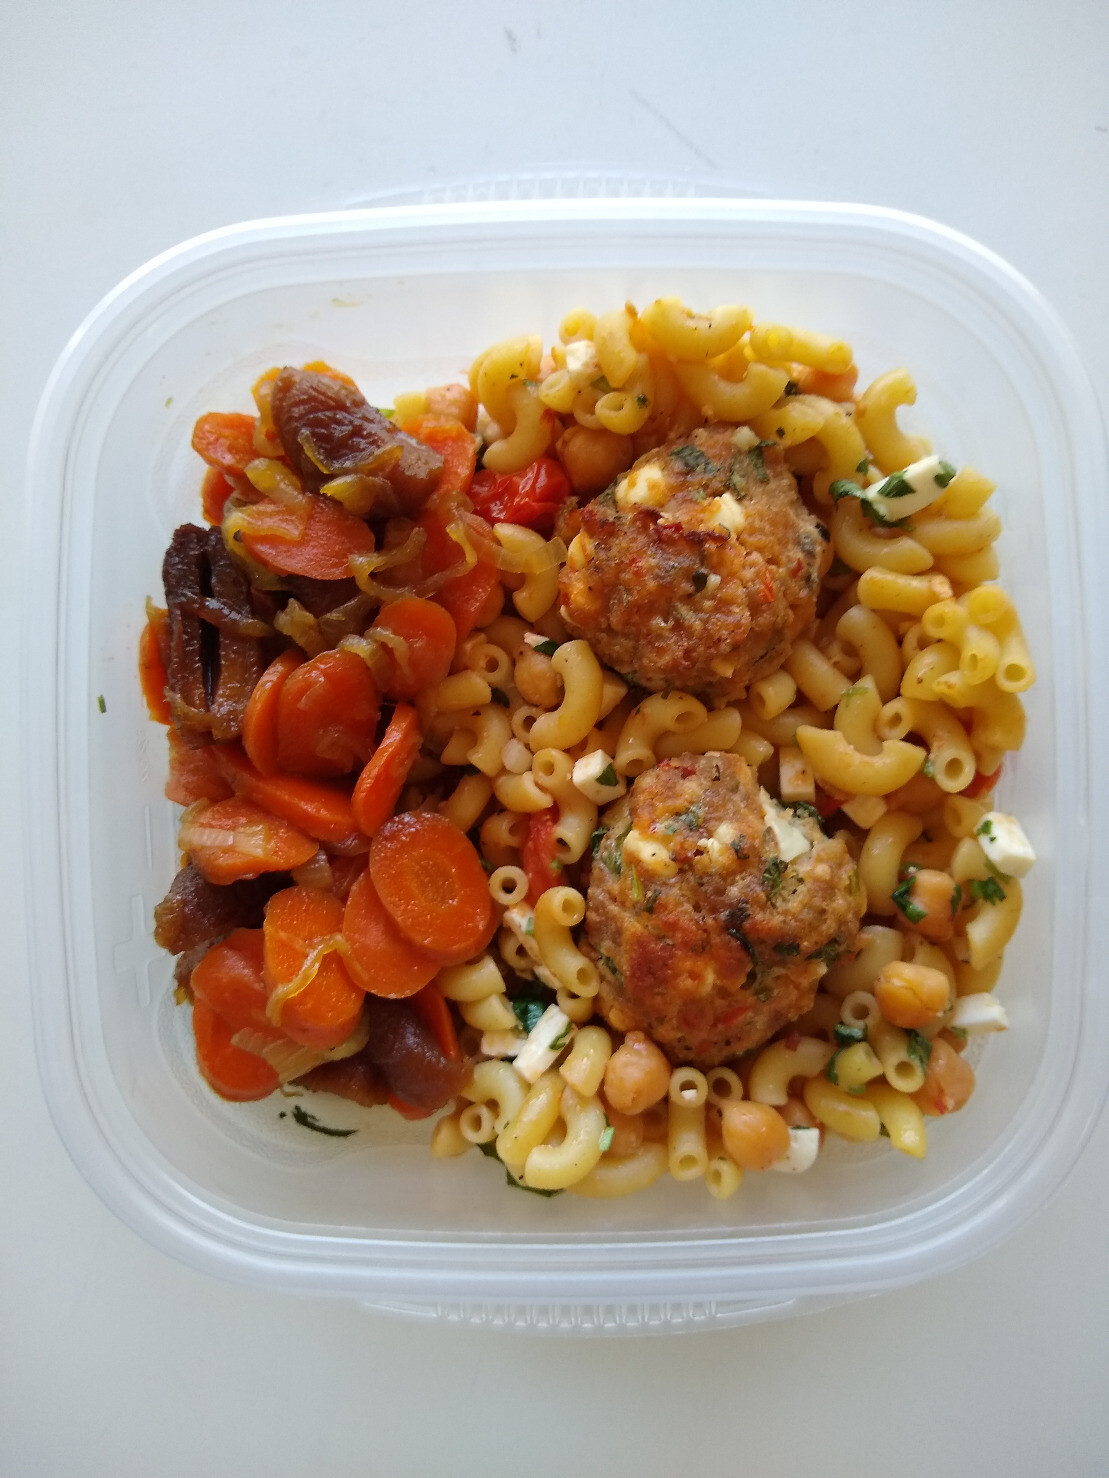 Meatballs with Carrot side